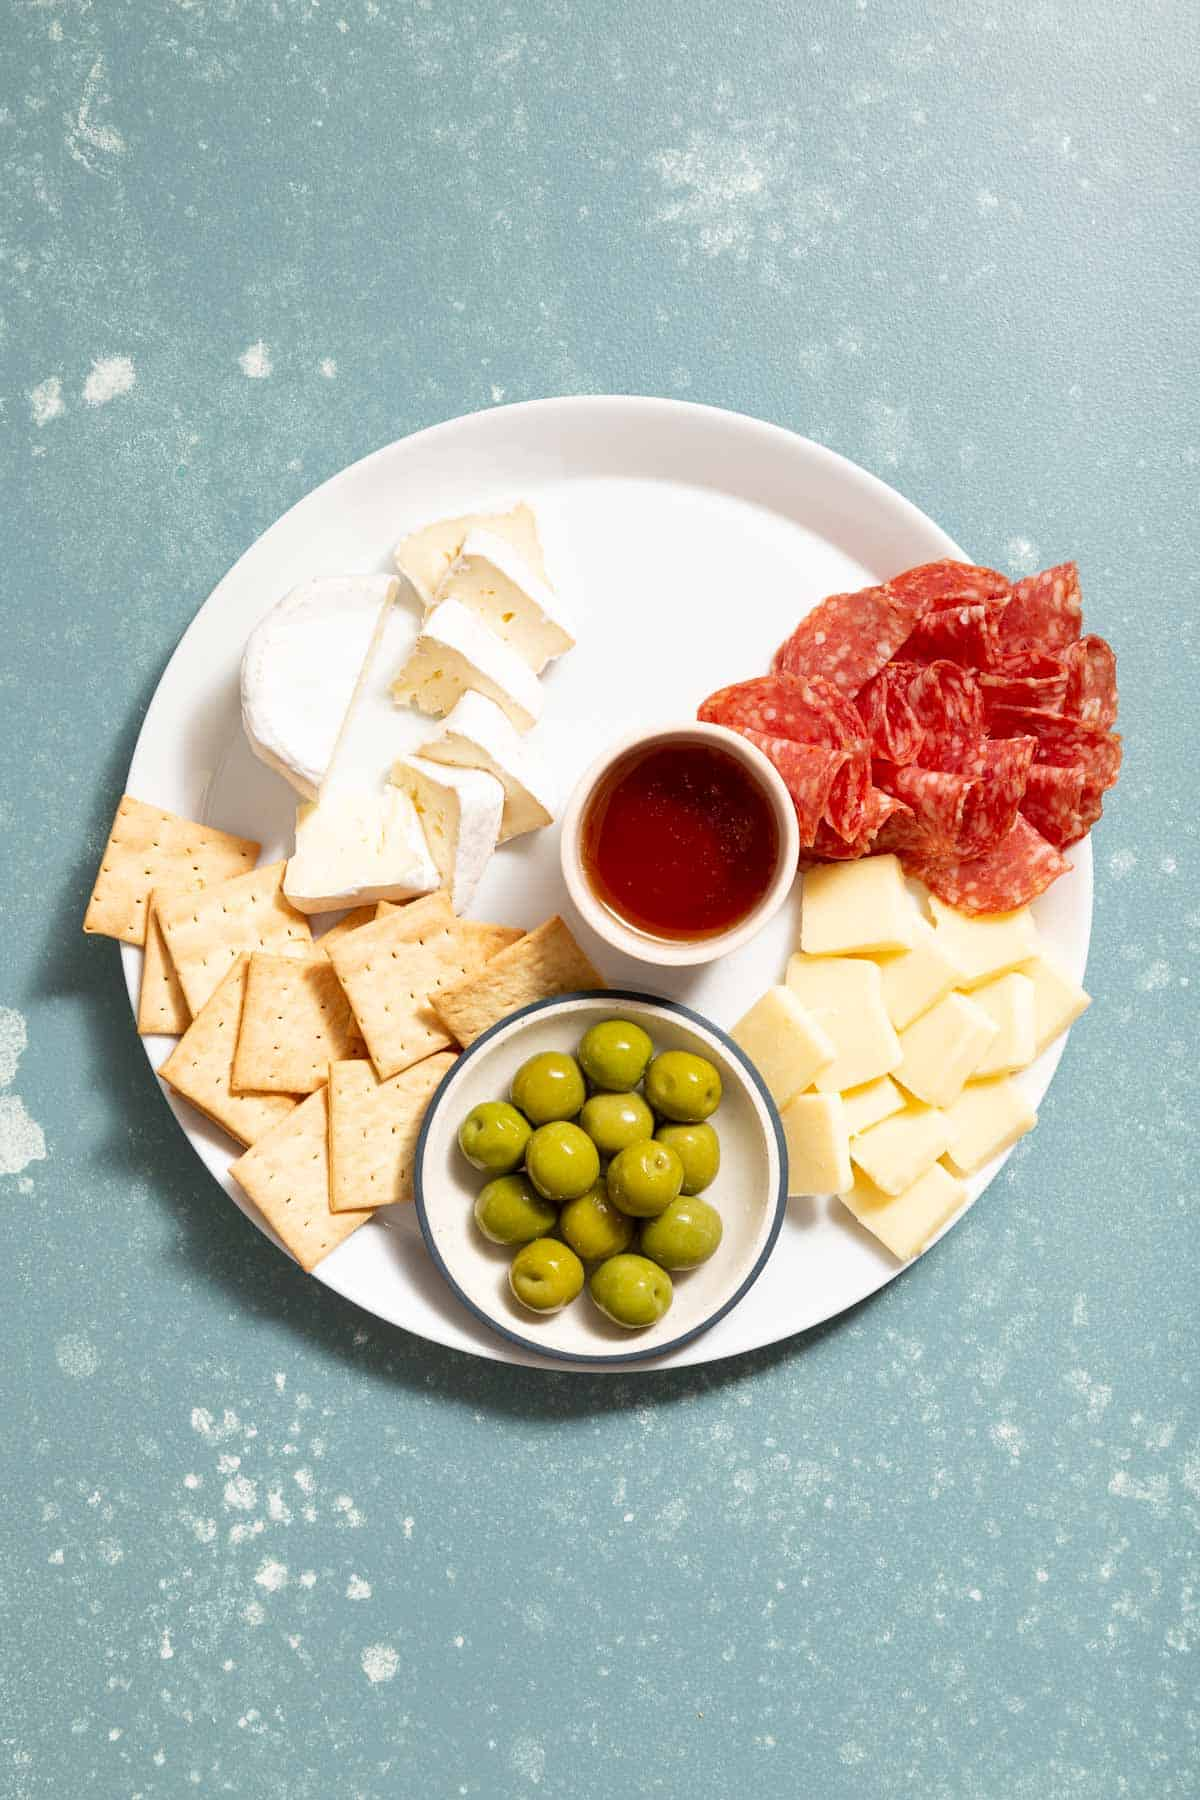 Large white plate with sliced meat, white cheese, crackers, honey, and green olives.